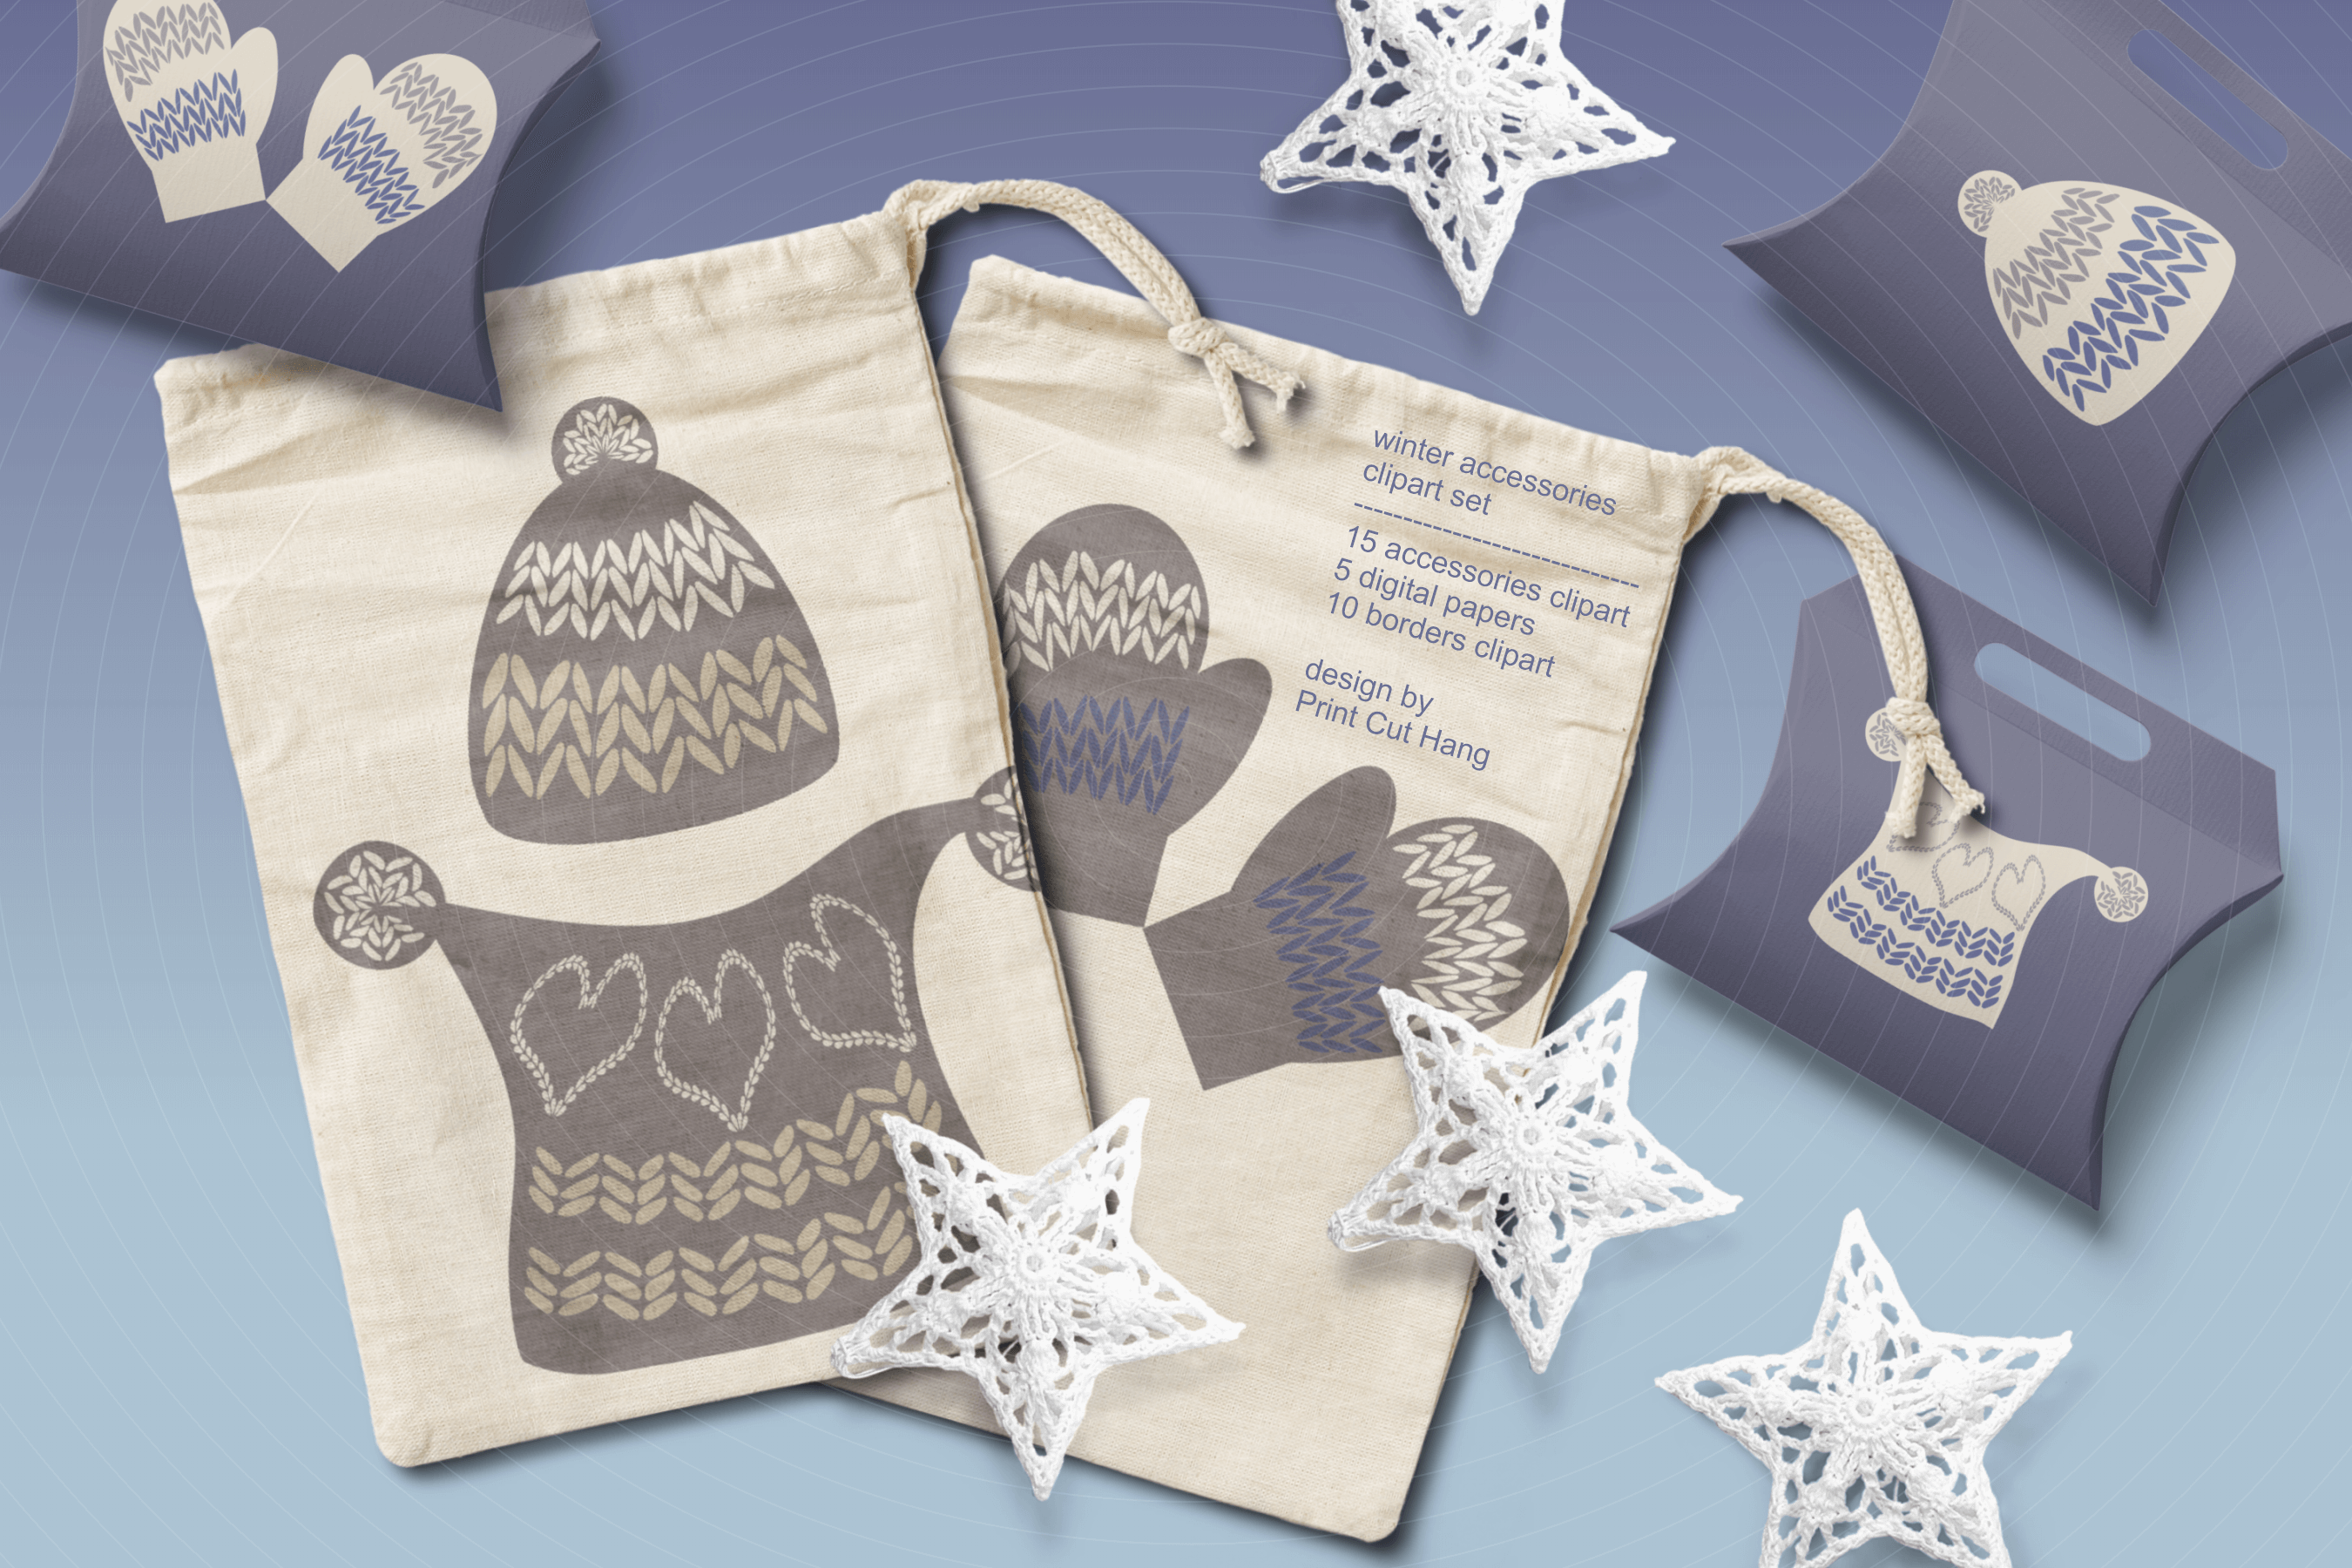 Winter Knitted Accessories Clipart & Scrapbooking Papers Set example image 10